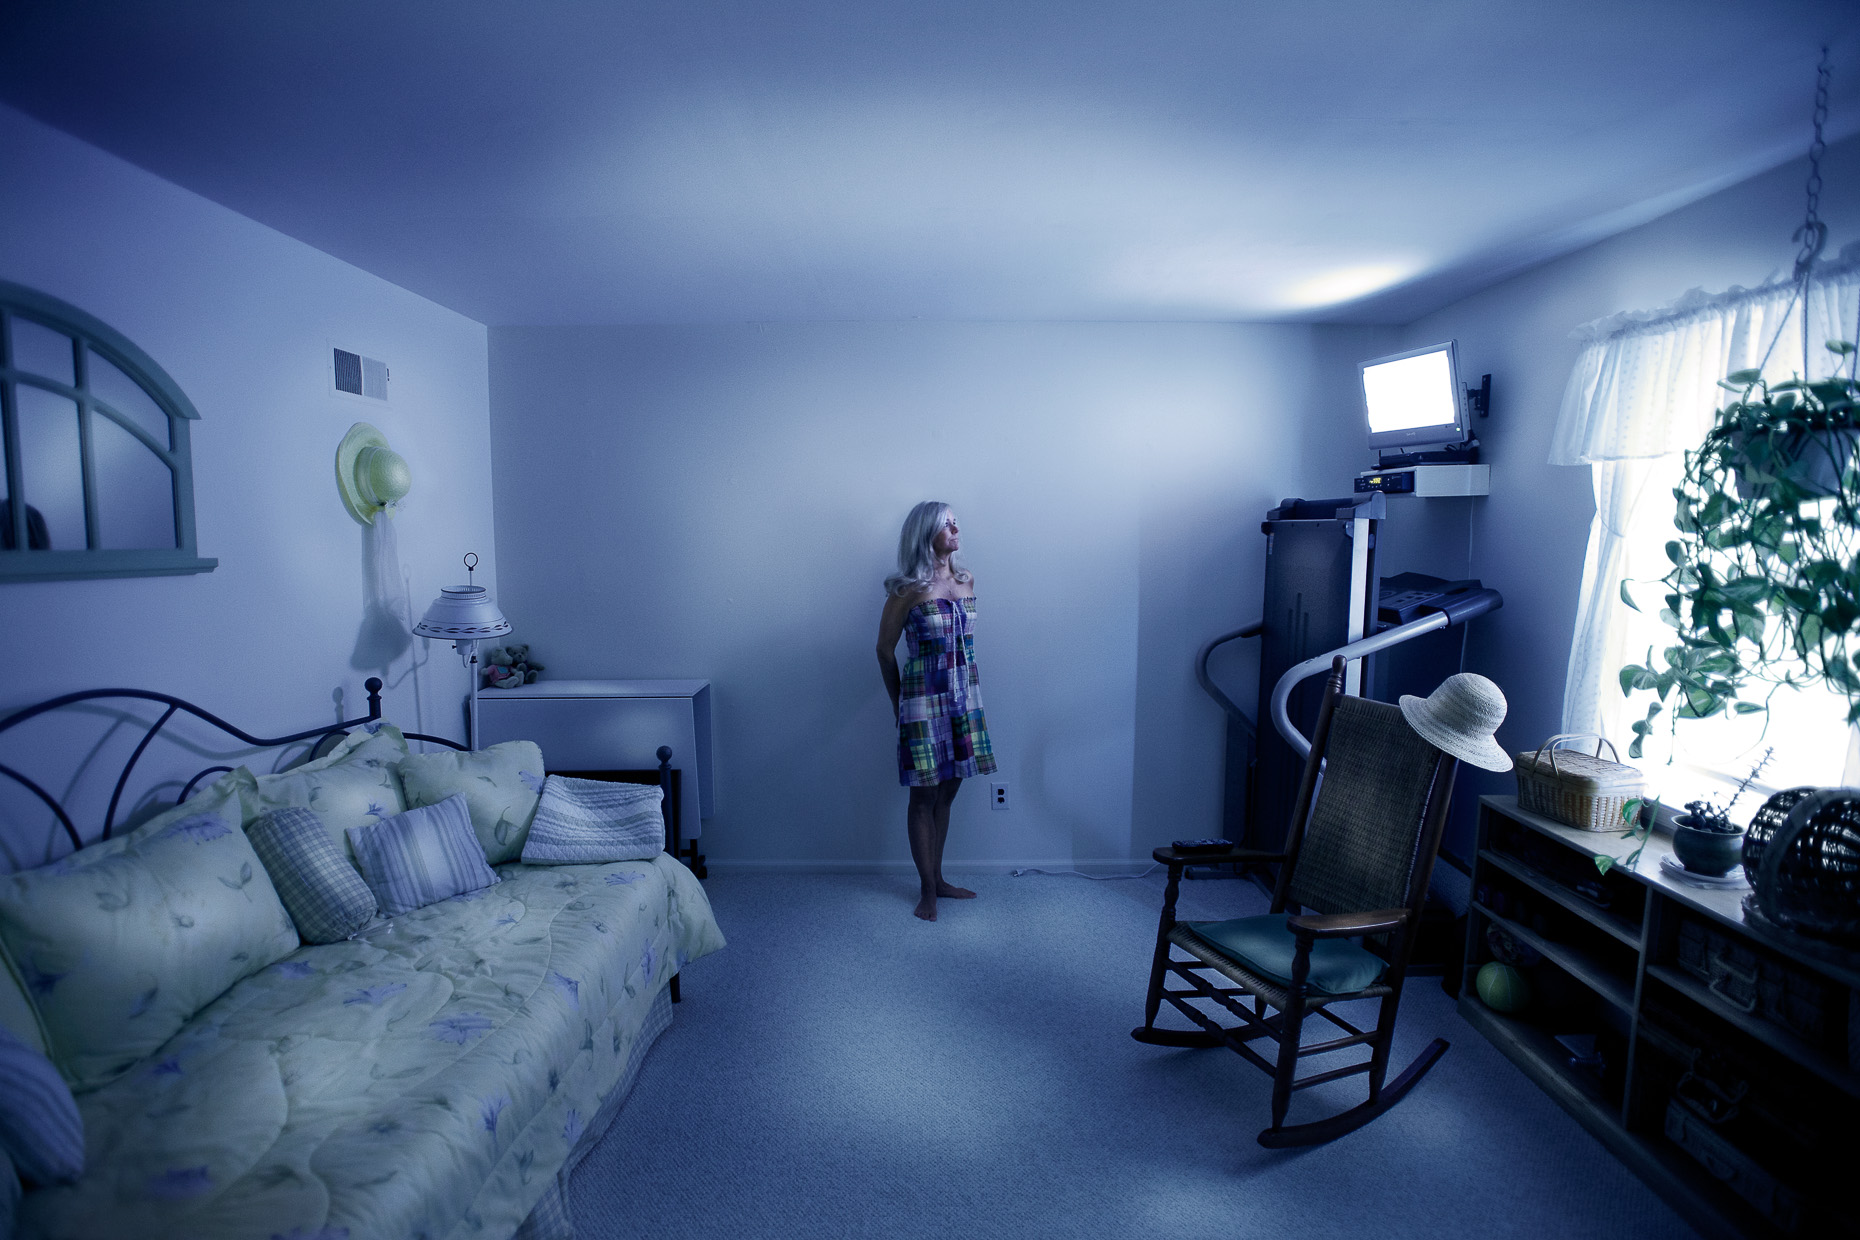 portraits-environmental-housewife-woman-purple-room